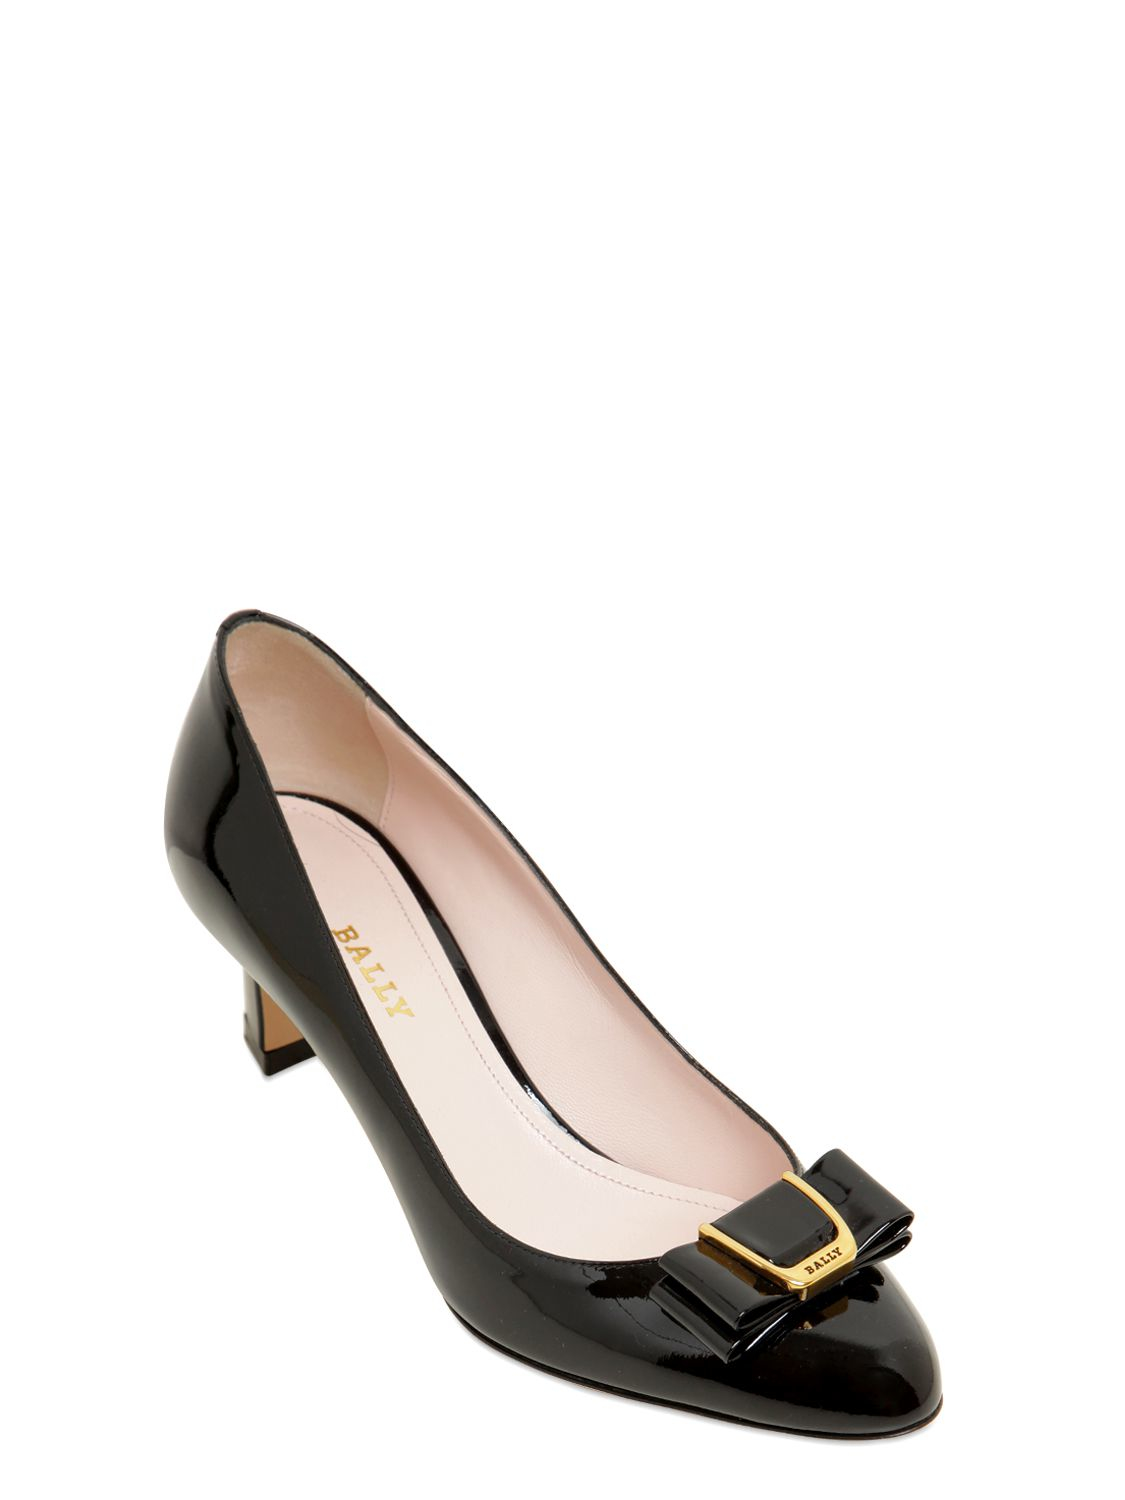 d647999a3ef2 Lyst - Bally 55mm Bellyna Bow Patent Leather Pumps in Black